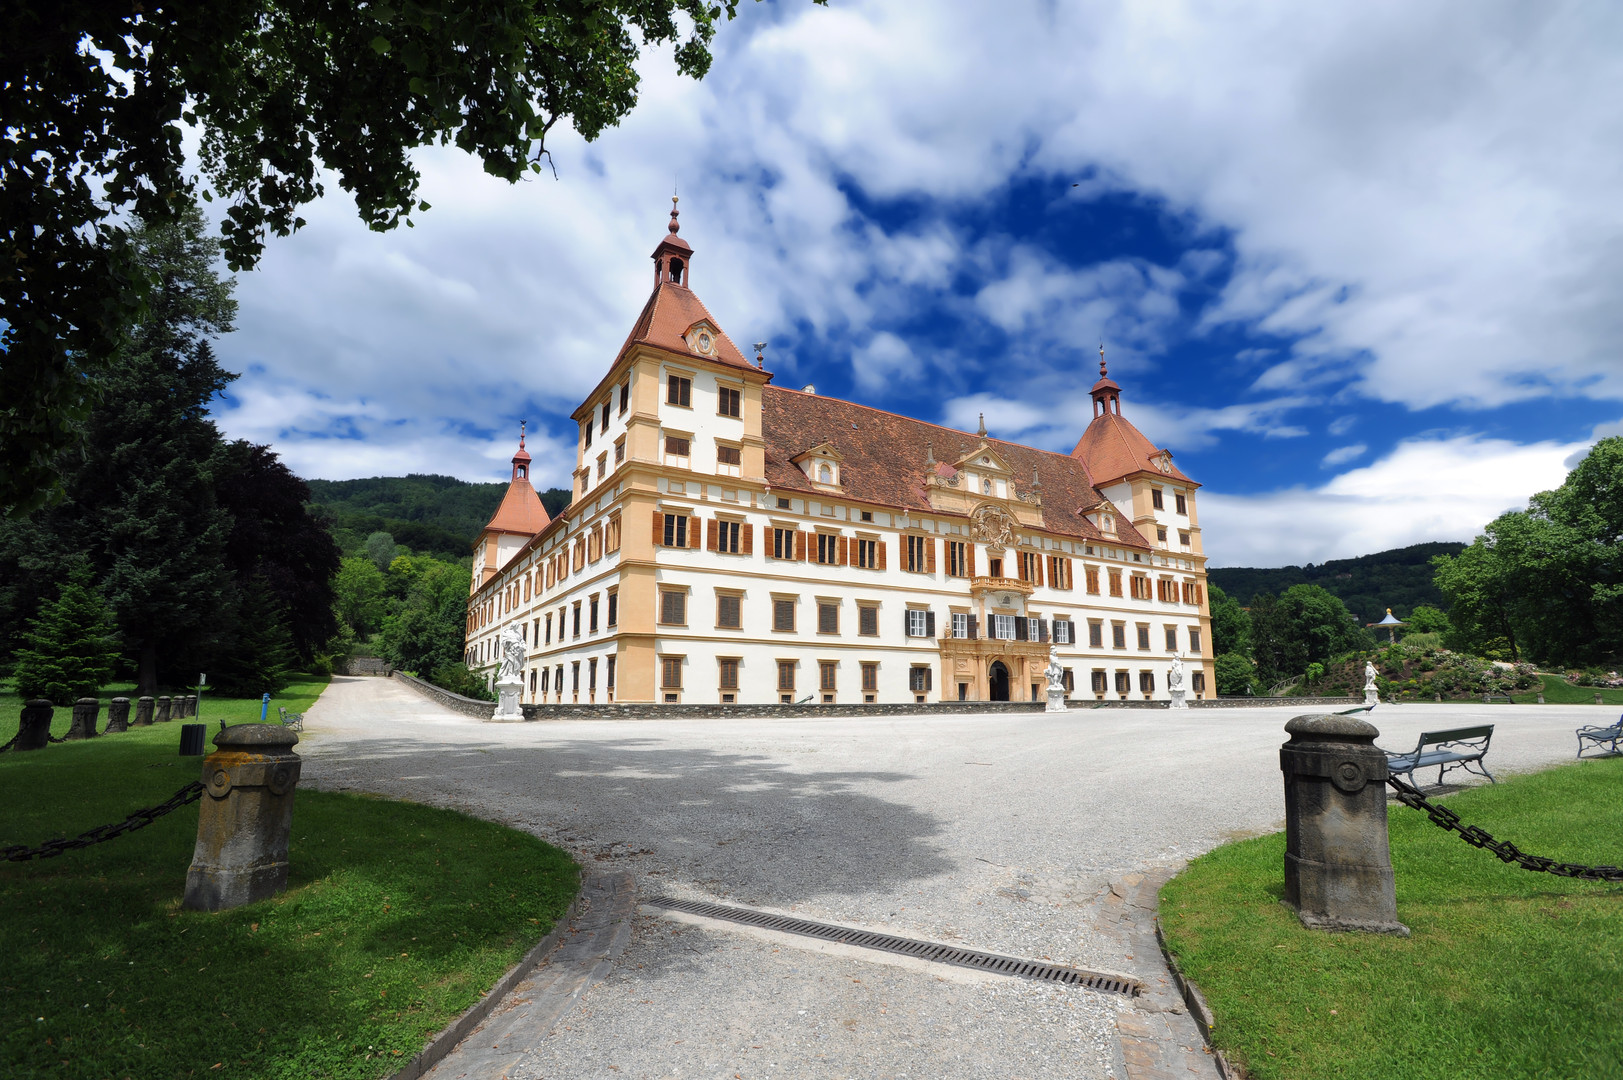 Eggenberg castle in Graz, entrance view